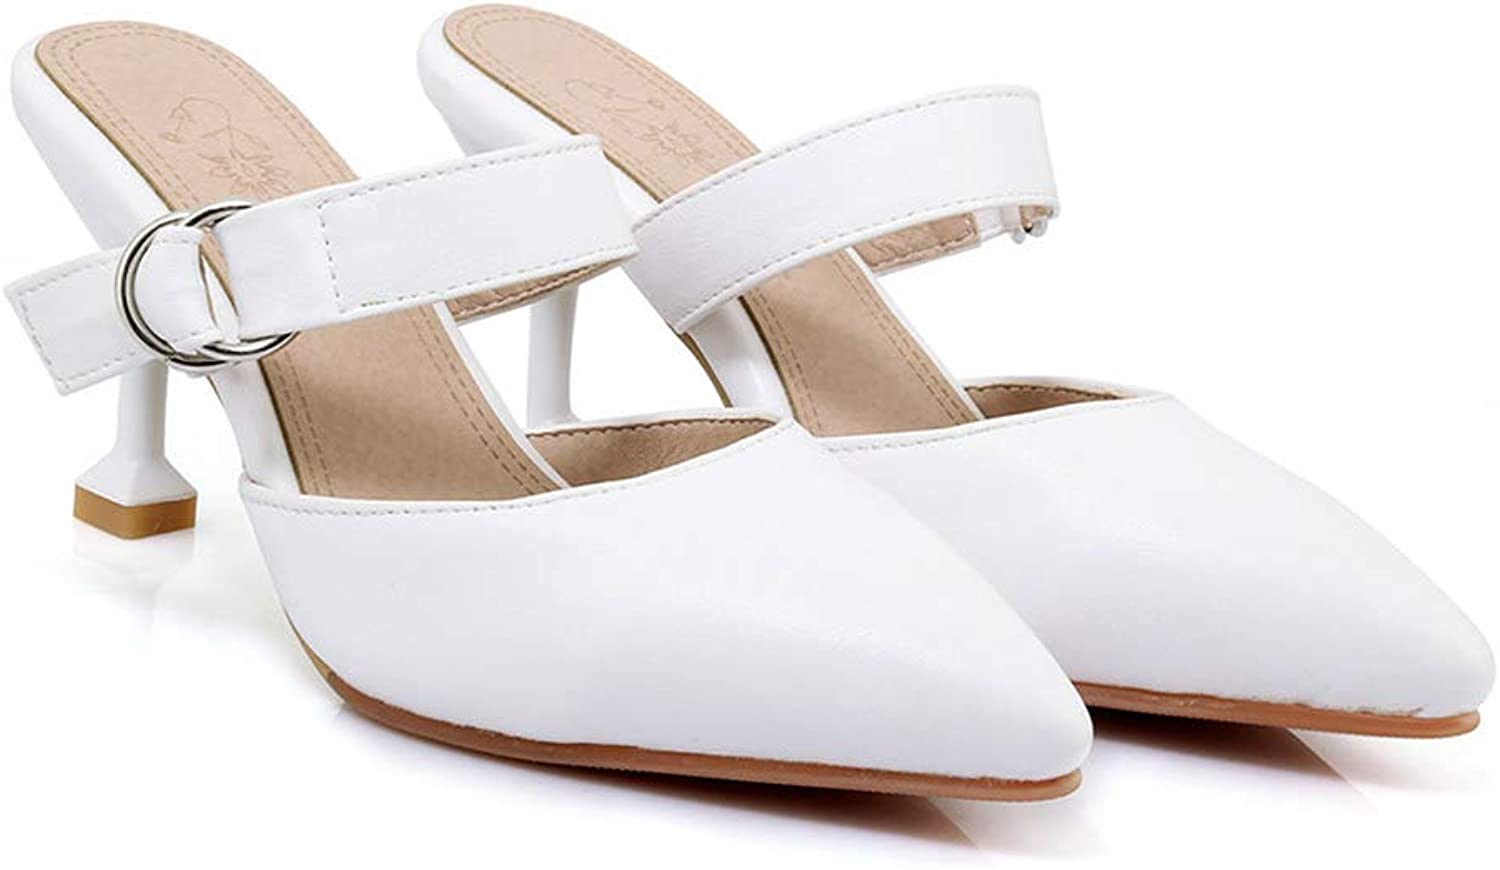 Eora-2sl Black White Summer Pointed Toe shoes Woman Elegant Casual Women high Heels Slippers Big Size 33-43